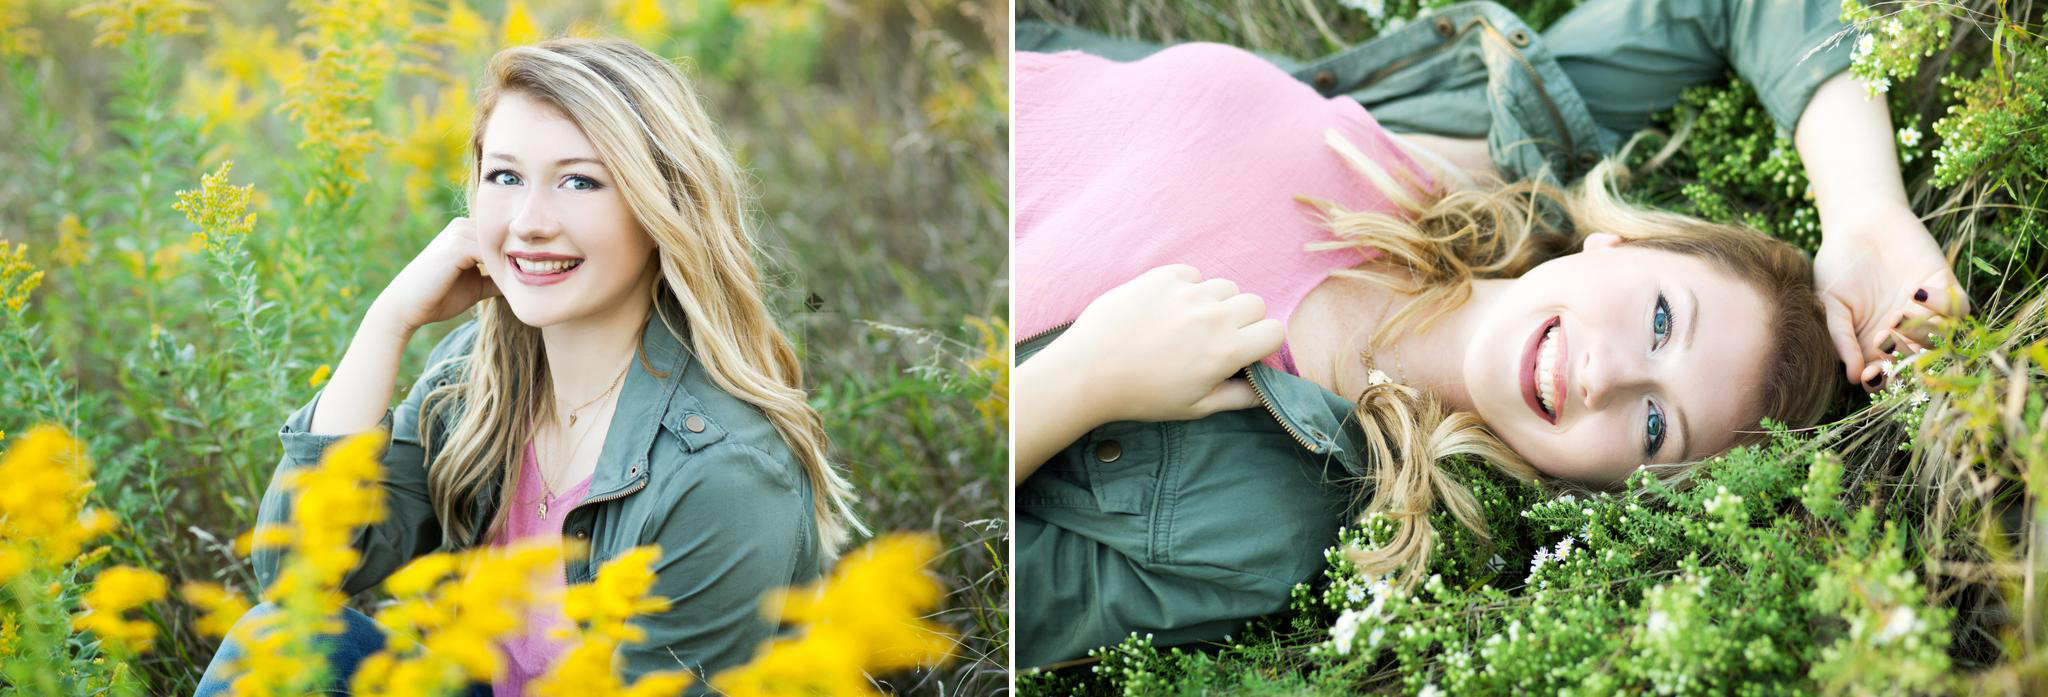 South Dakota Senior Pictures | Country Senior Pictures by Katie Swatek Photography | Wildflower Senior Pictures by Katie Swatek Photography